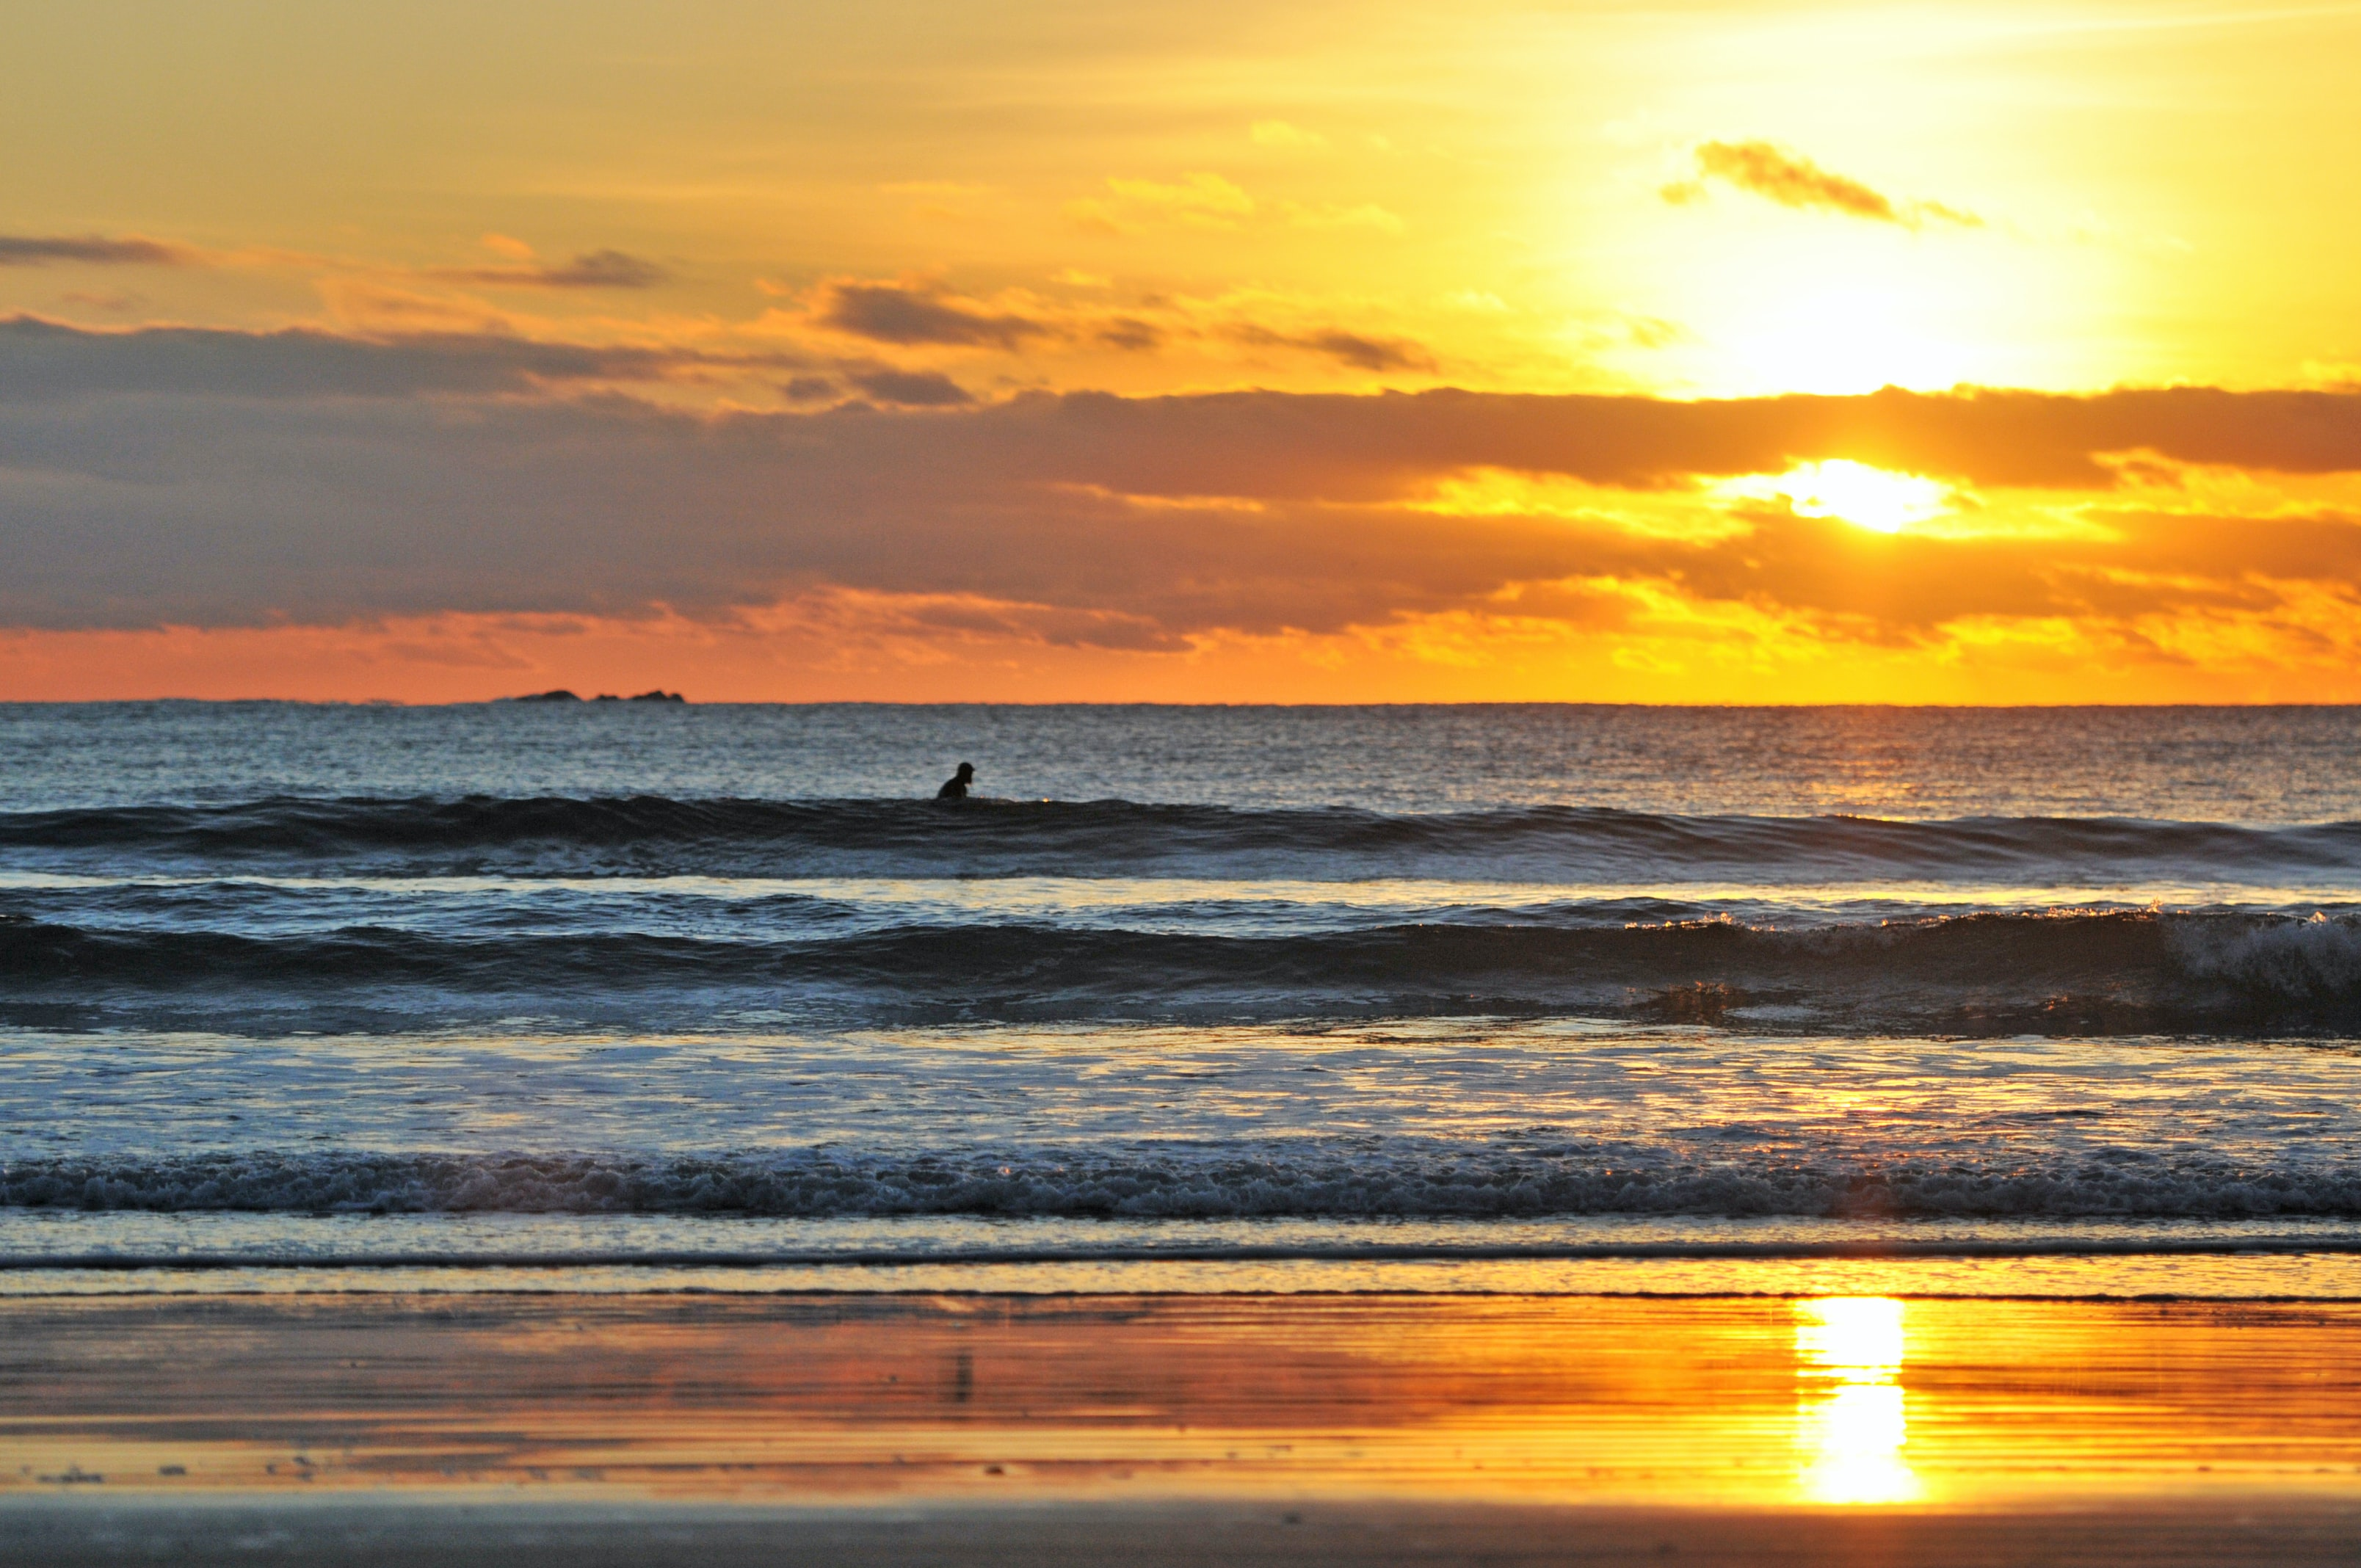 A view out to sea, rolling tide and one silhouette surfer waiting to catch the next wave as the sunrise-or-sunset lights the cloudy sky yellow and orange